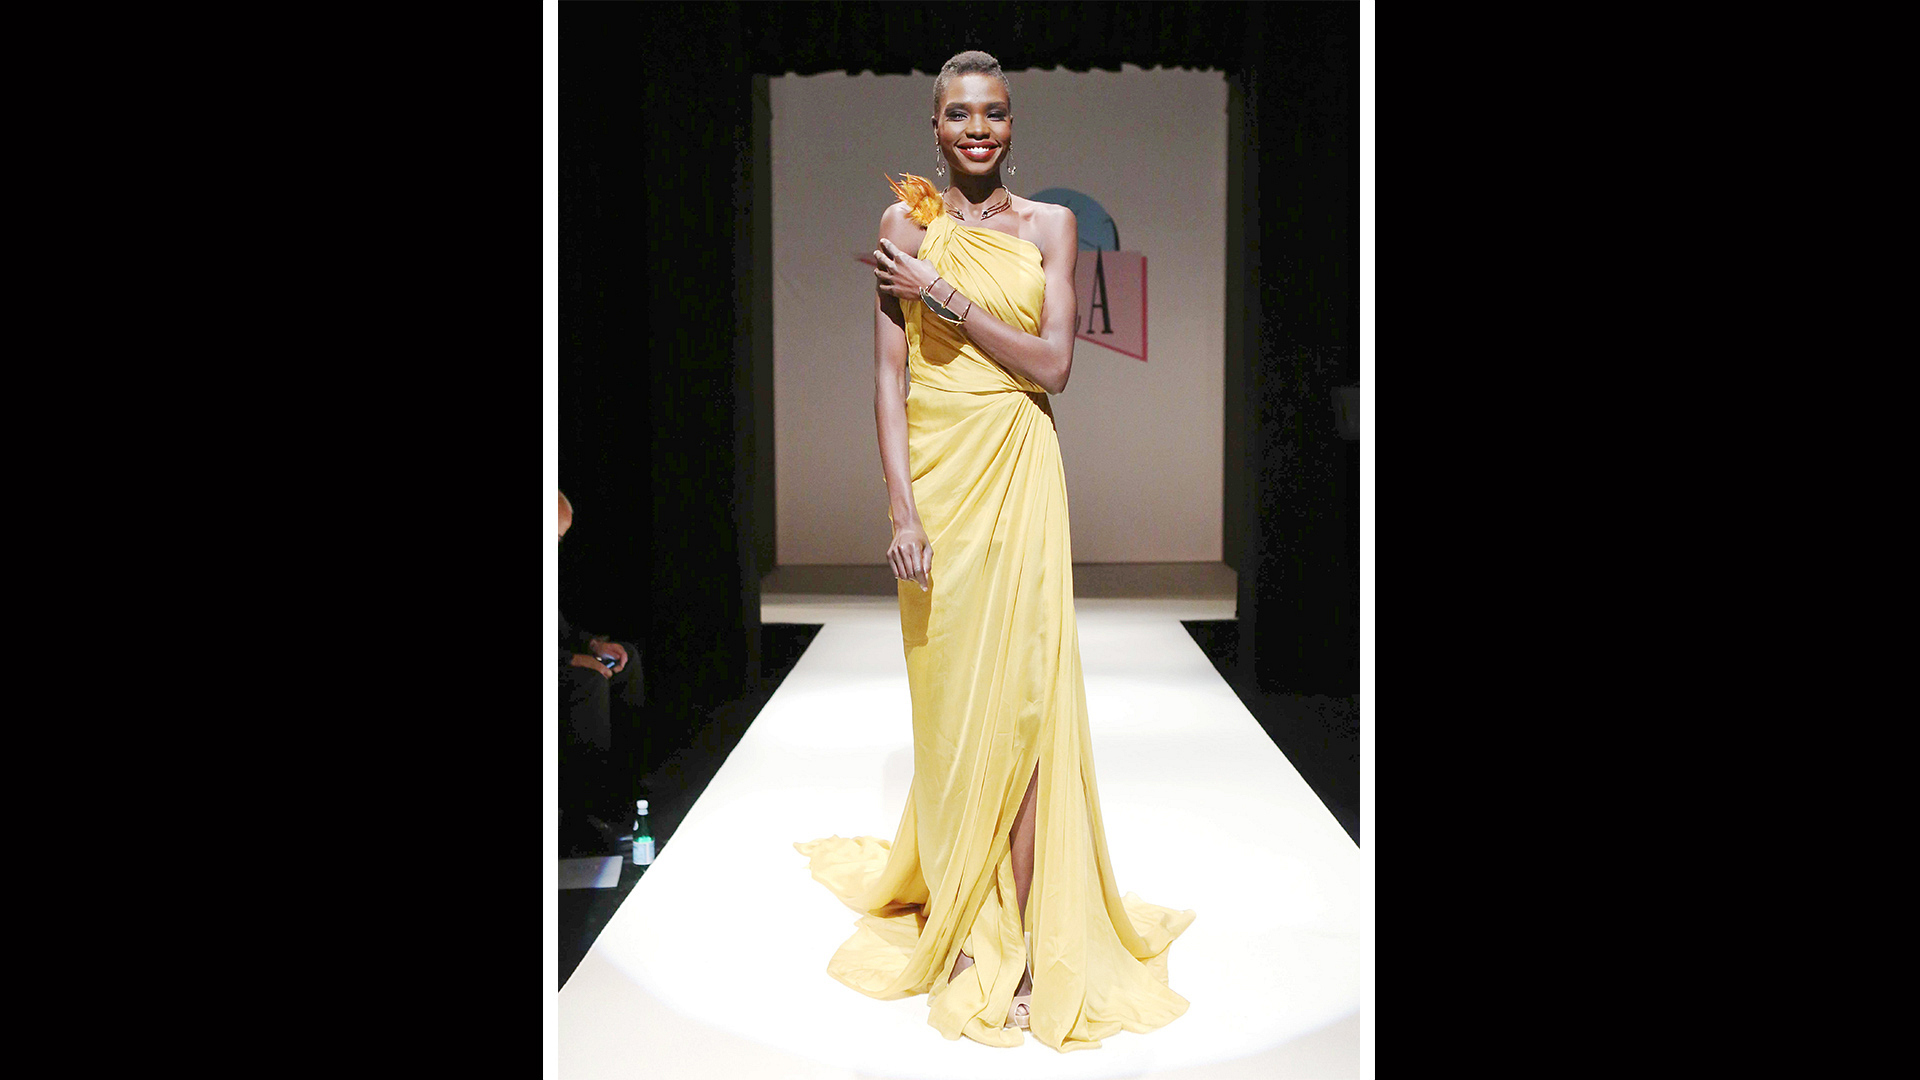 This off-the-shoulder yellow gown is perfect for cool spring nights.